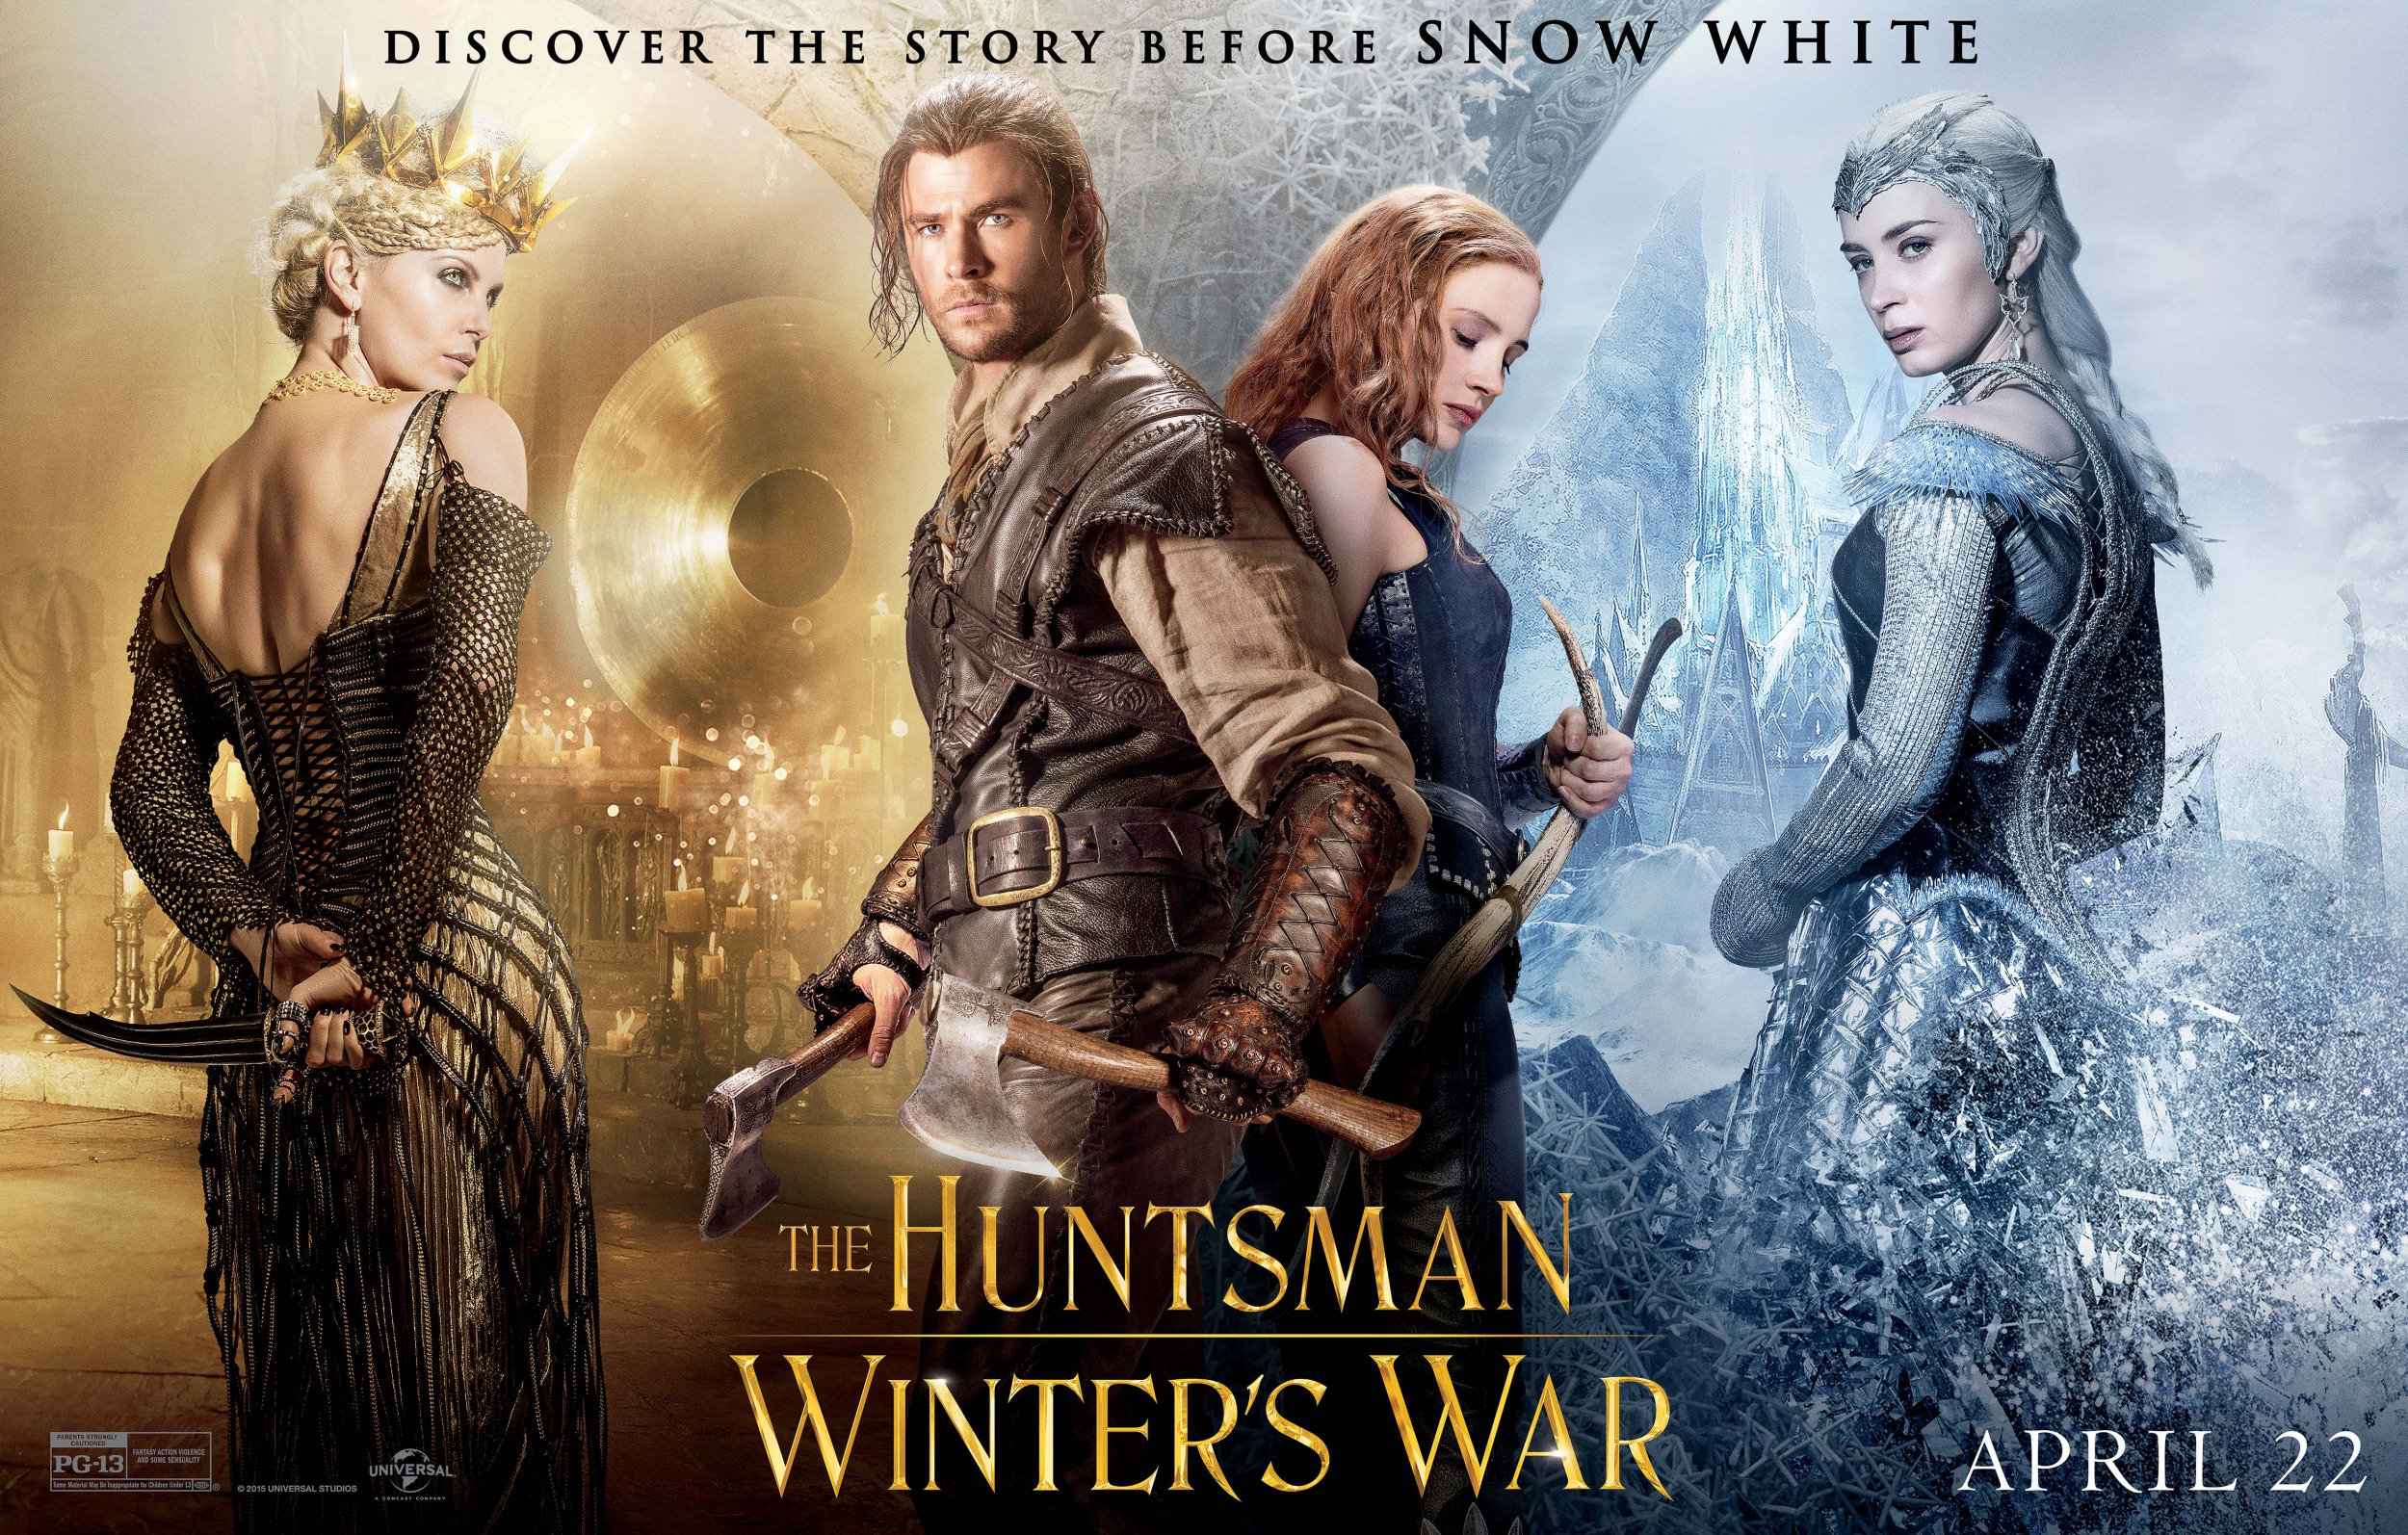 Coming Soon Trailers: The Huntsman-Winter's War, Elvis and Nixon, Tale of Tales